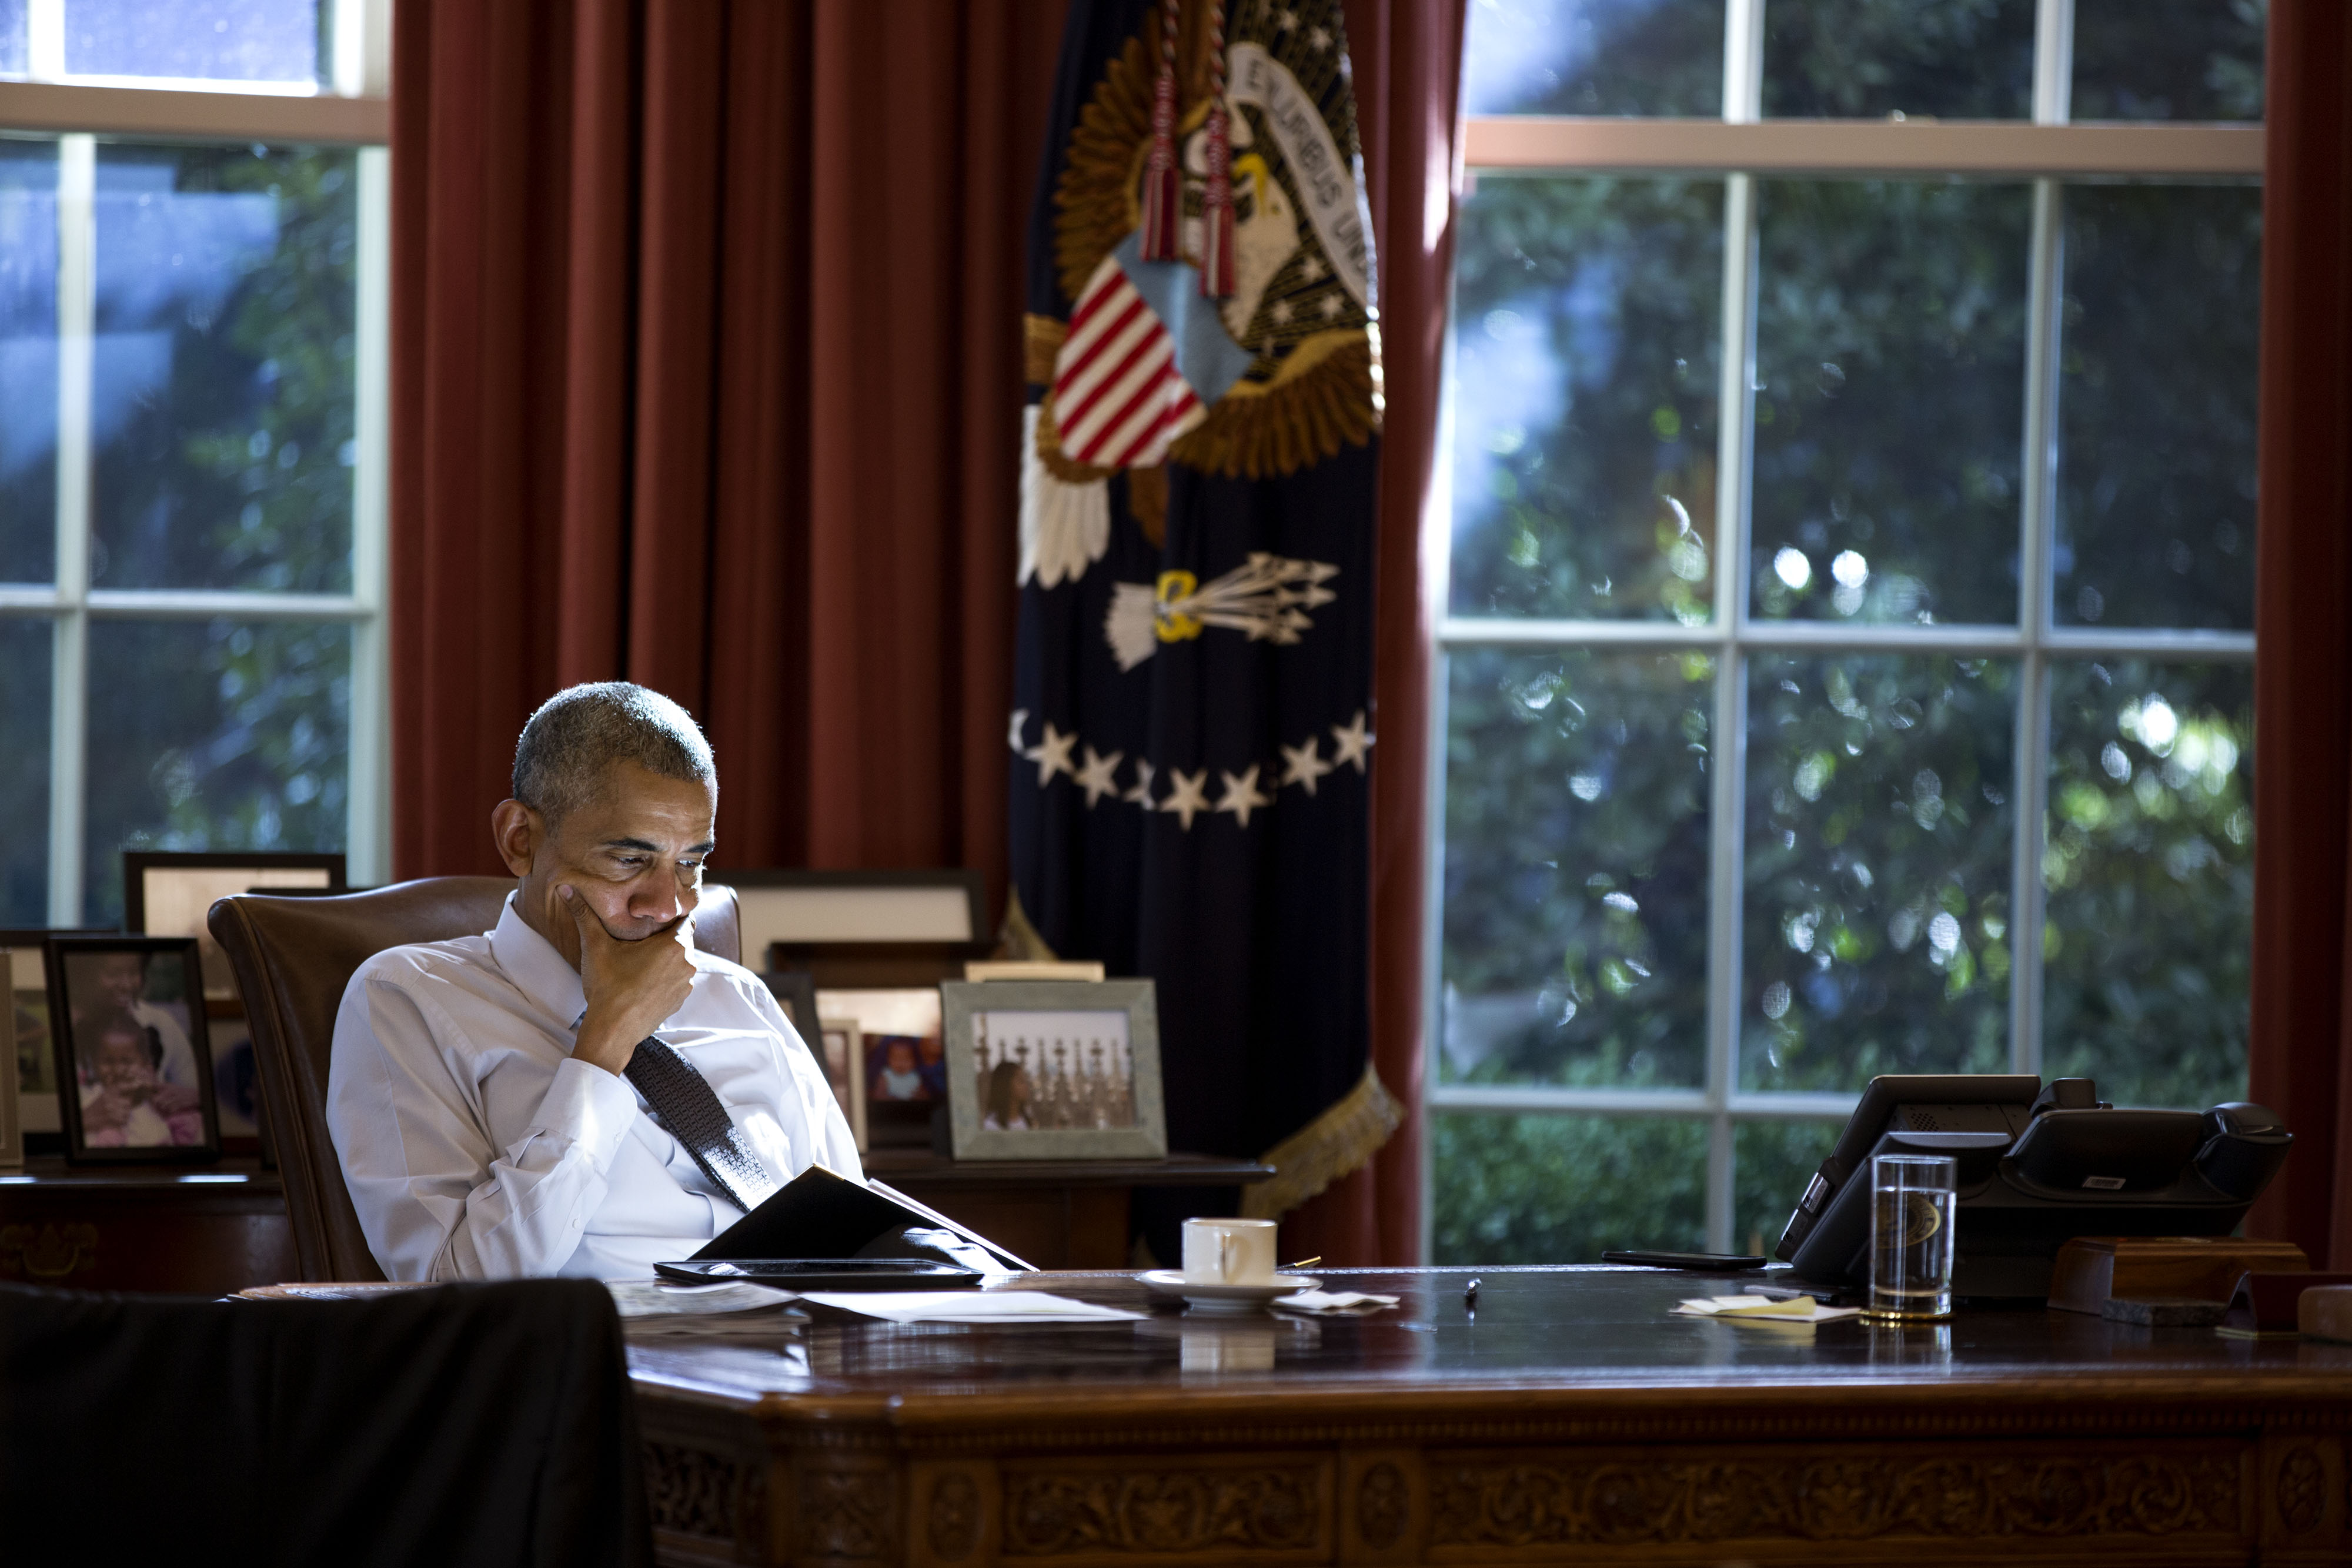 White House photographer, K-State alumnus Pete Souza gets